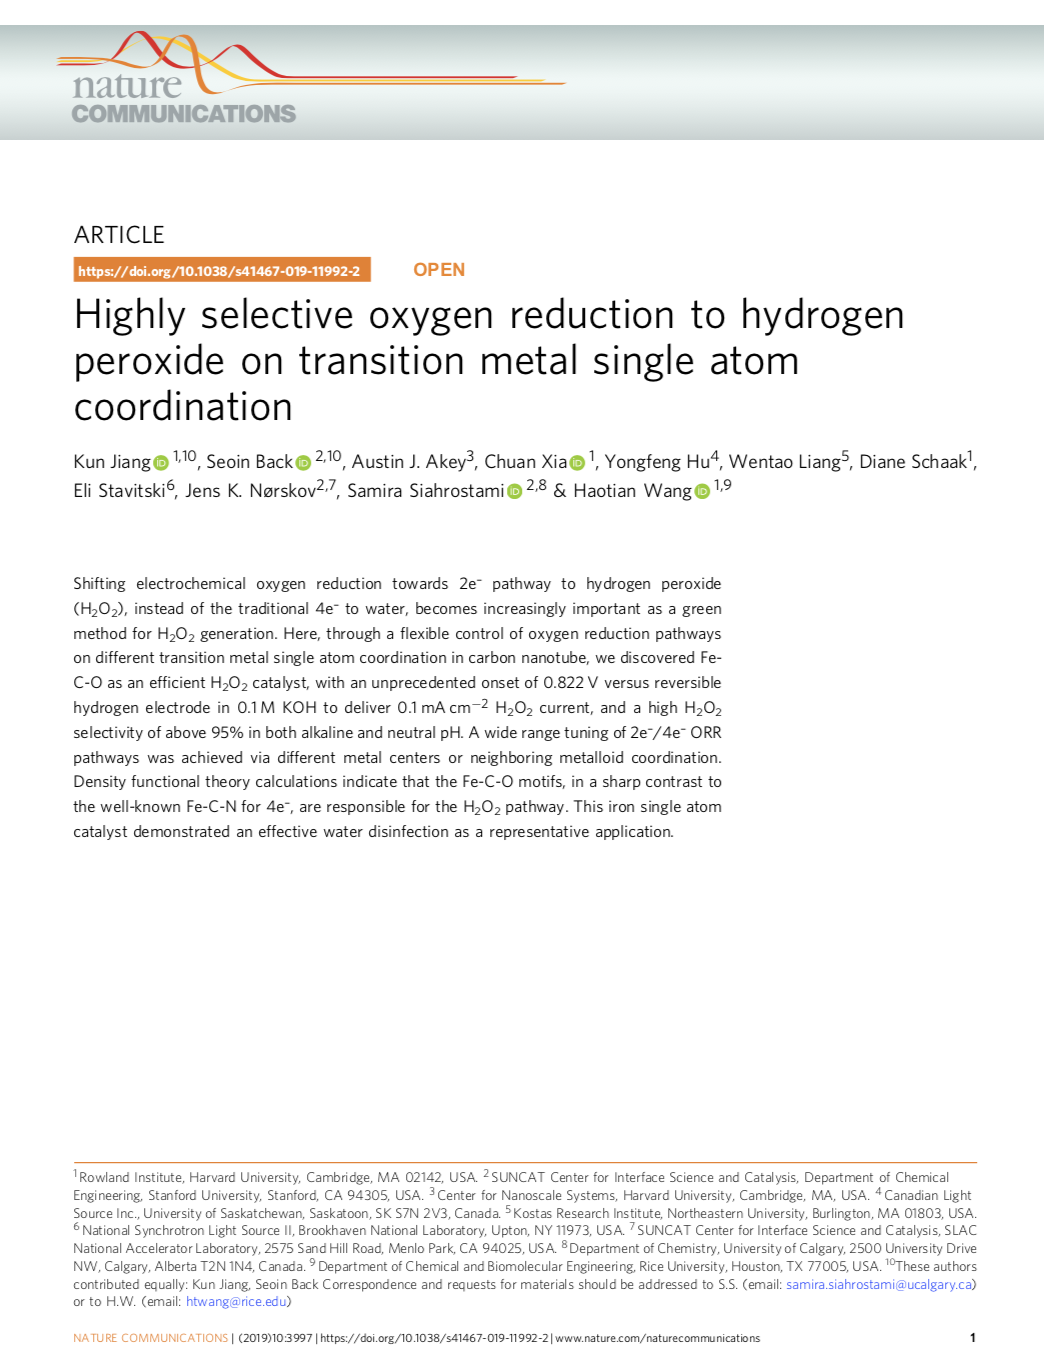 Highly selective oxygen reduction to hydrogen peroxide on transition metal single atom coordination